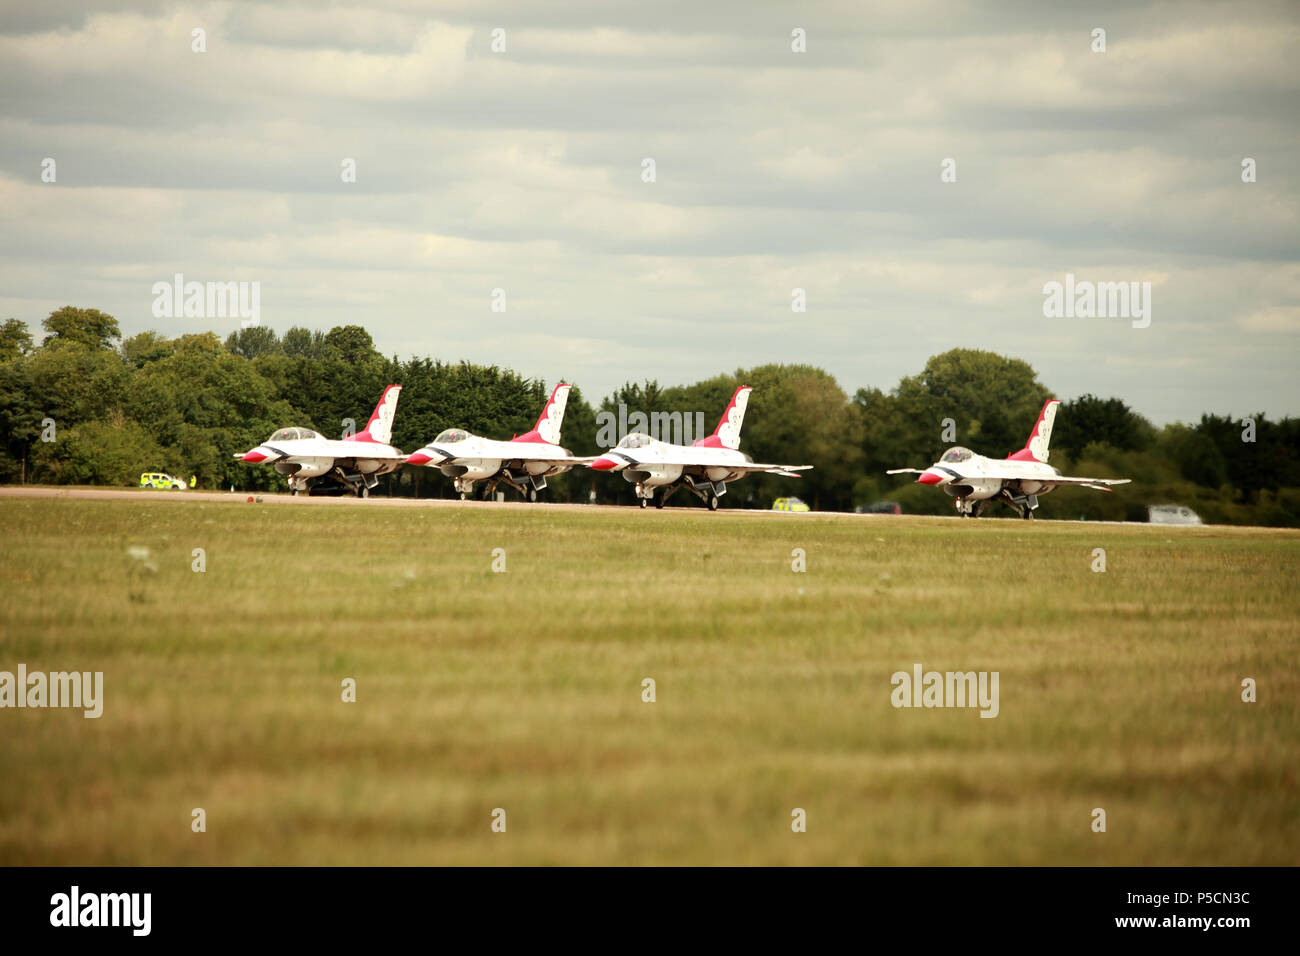 F-16D Fighting Falcons. The USAF Thunderbirds - Stock Image